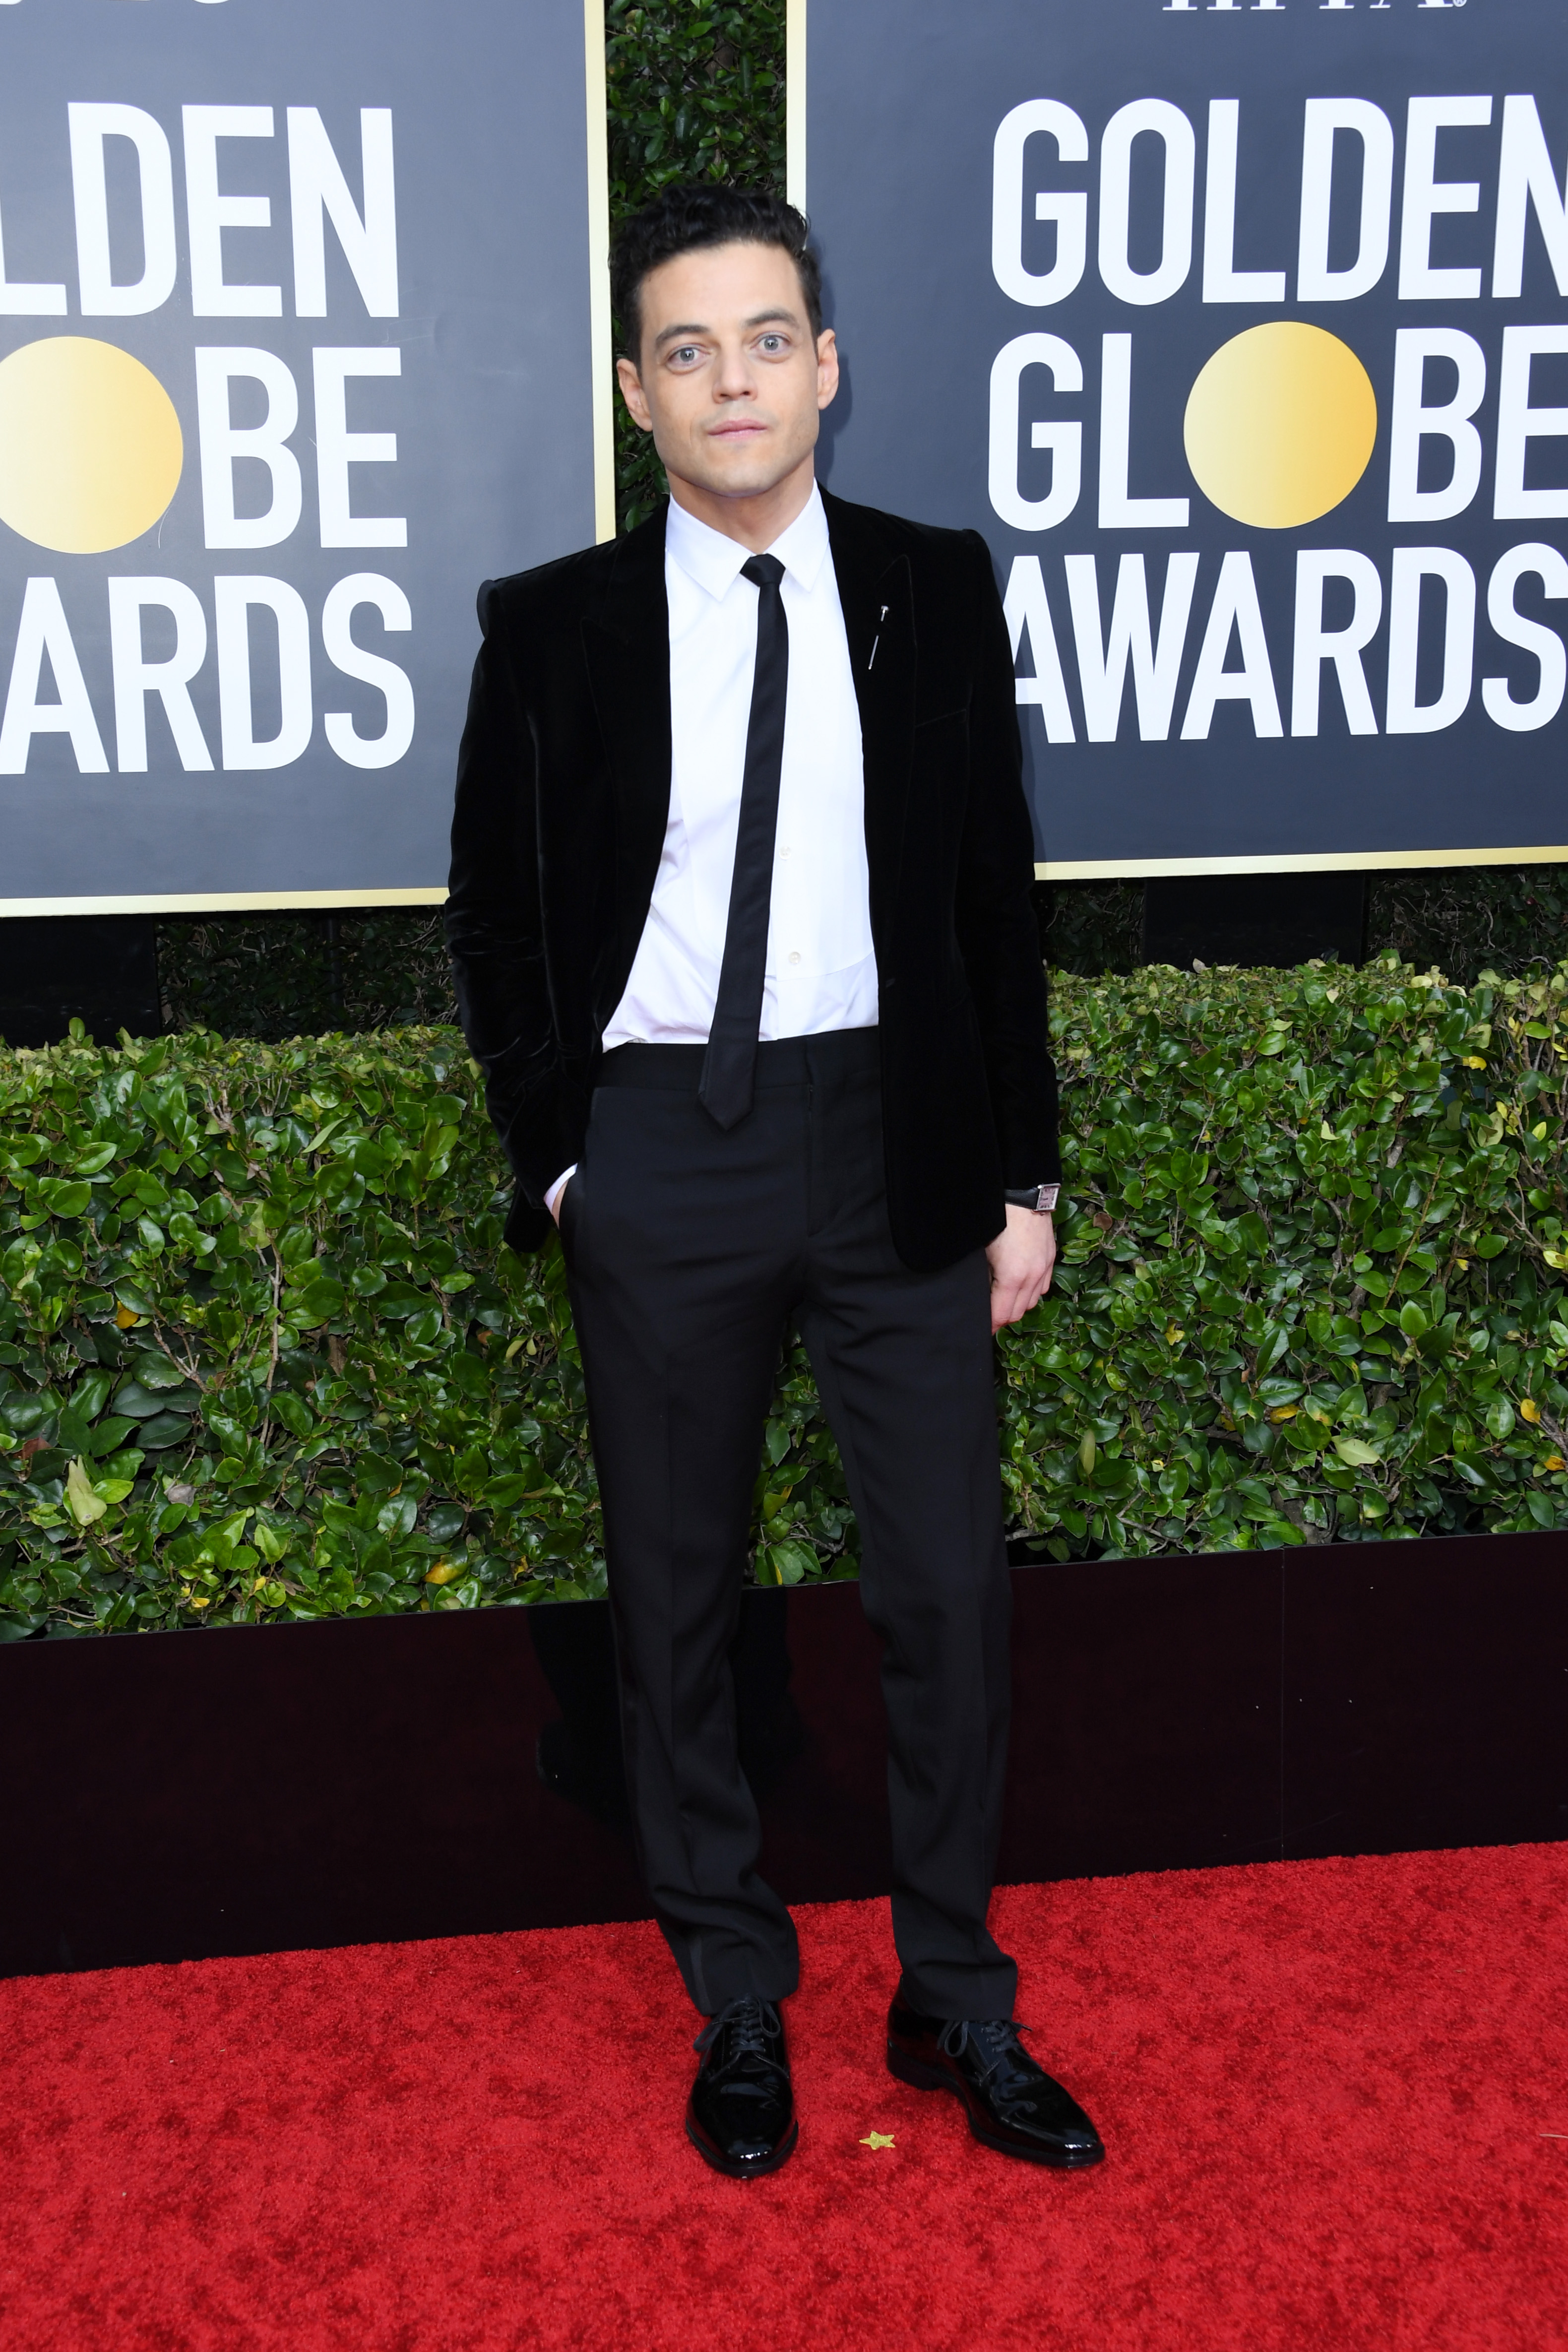 BEVERLY HILLS, CALIFORNIA - JANUARY 05: Rami Malek attends the 77th Annual Golden Globe Awards at The Beverly Hilton Hotel on January 05, 2020 in Beverly Hills, California. (Photo by Jon Kopaloff/Getty Images)